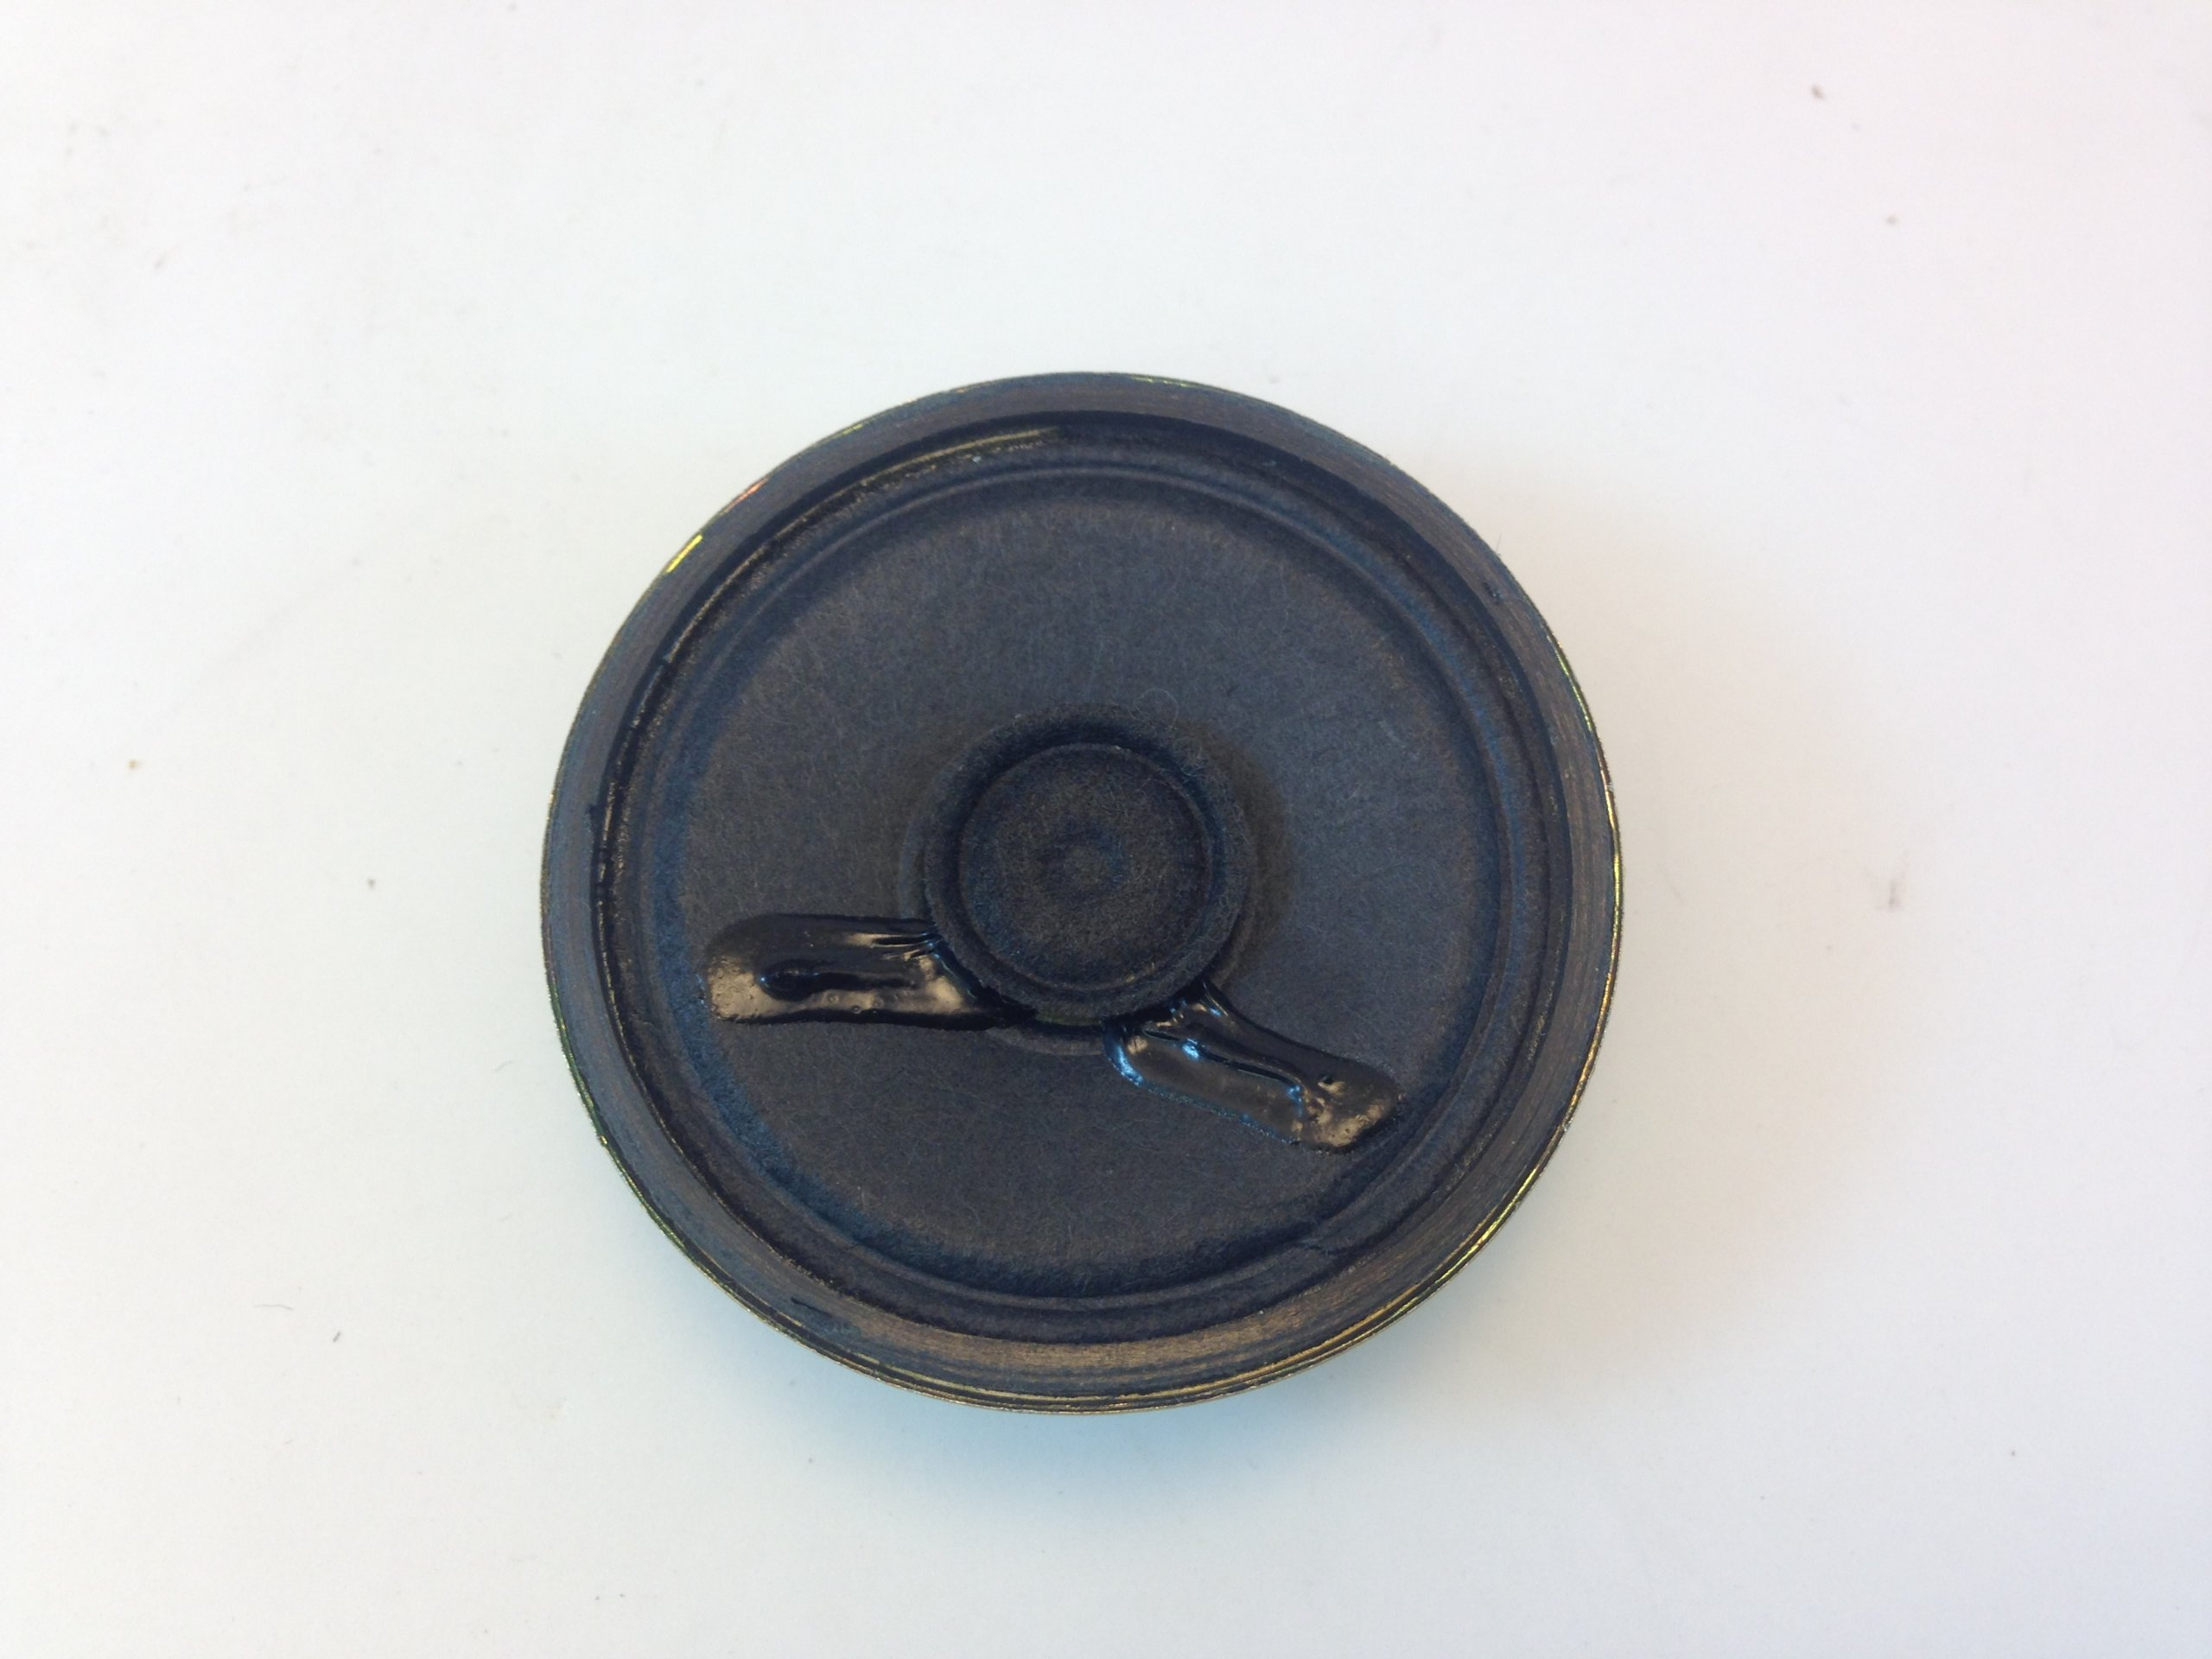 CES 2'' REPLACEMENT SPEAKER 1 OZ MAGNET .25 WATTS @ 8 OHMS (SINGLE)